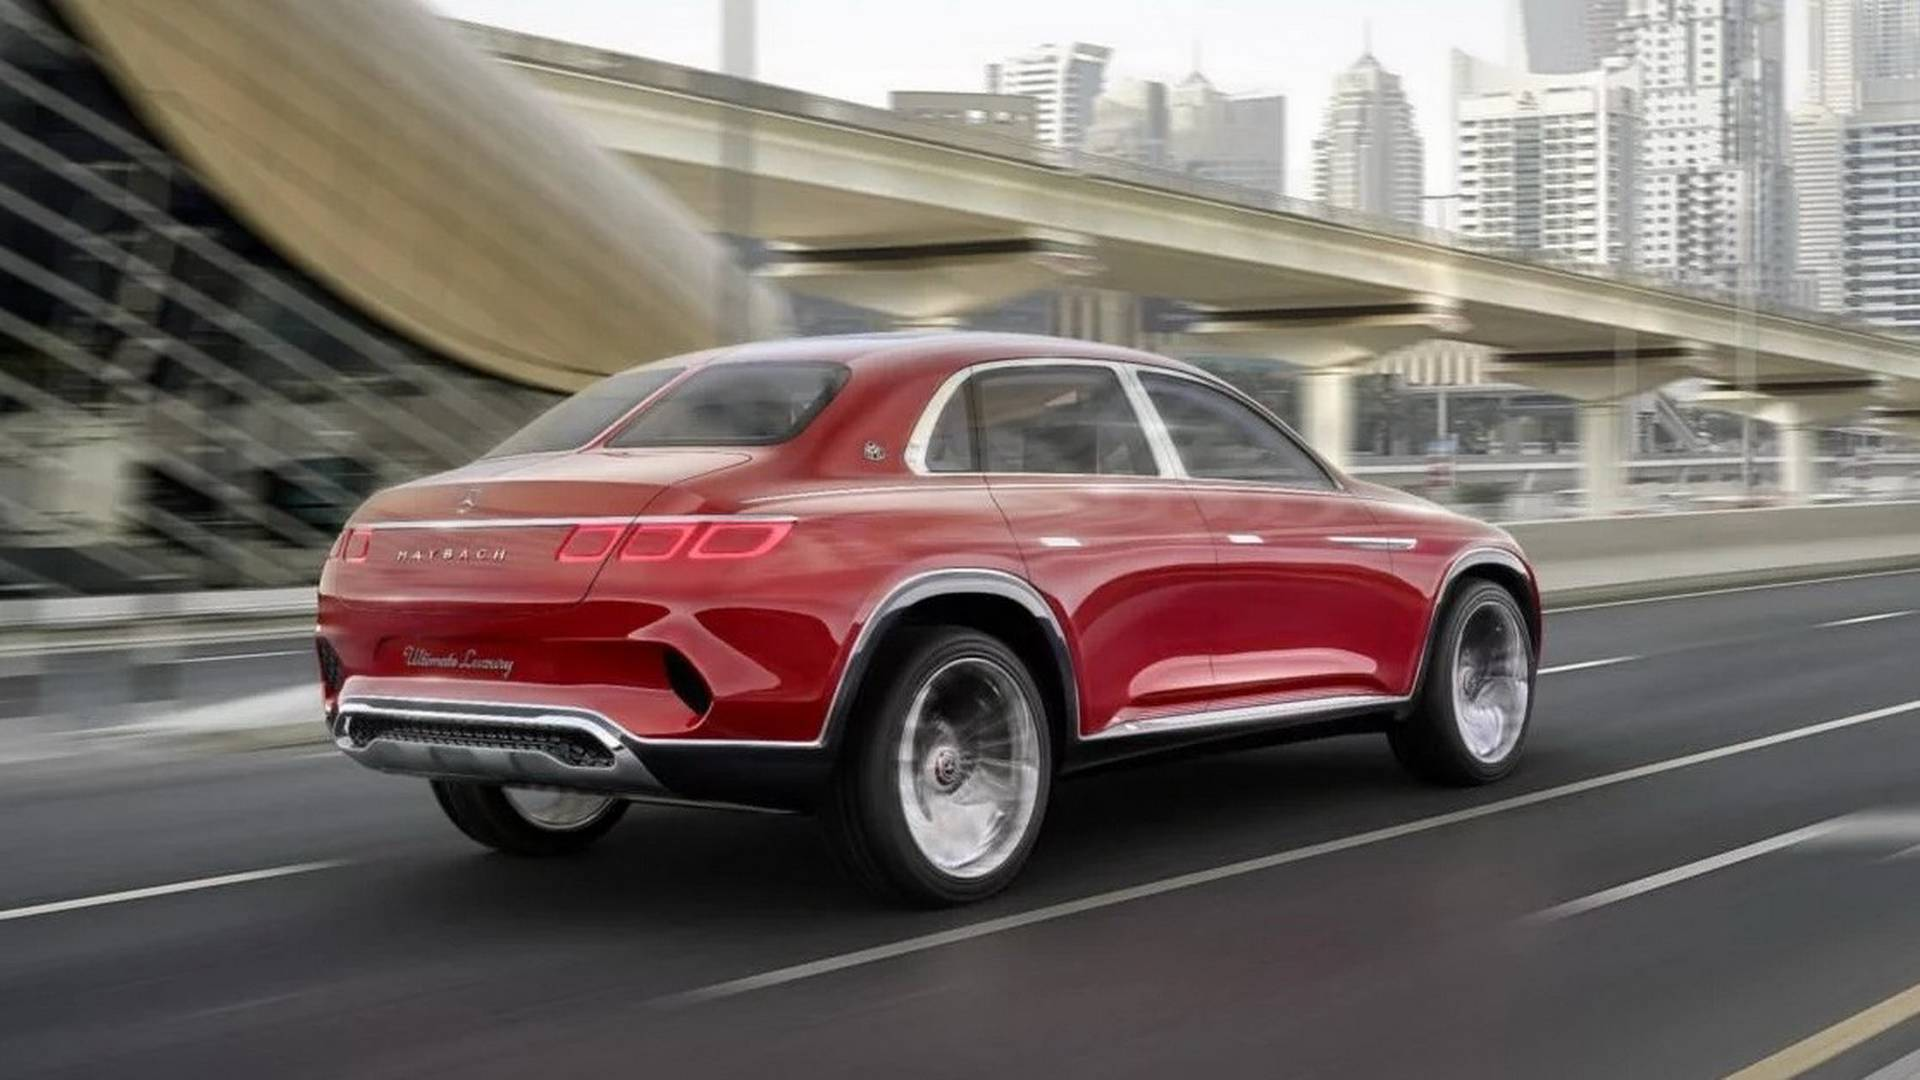 vision-mercedes-maybach-ultimate-luxury-leaked-official-image (7)